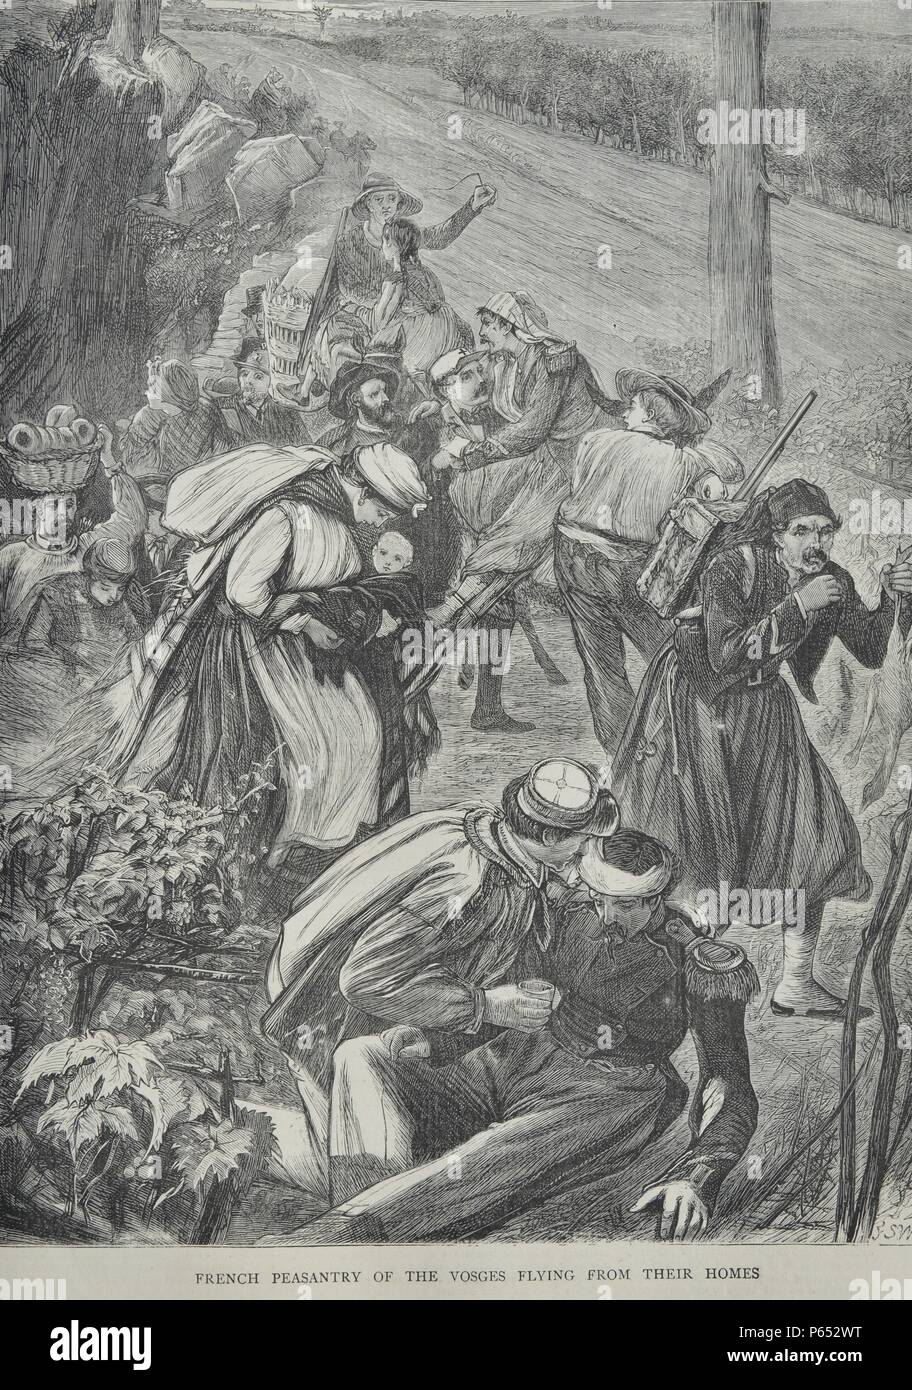 Engraving depicts French peasants leaving Vosges with their possessions. Vosges is a   department in the east of France, named after the local mountain range. Dated 1870 - Stock Image